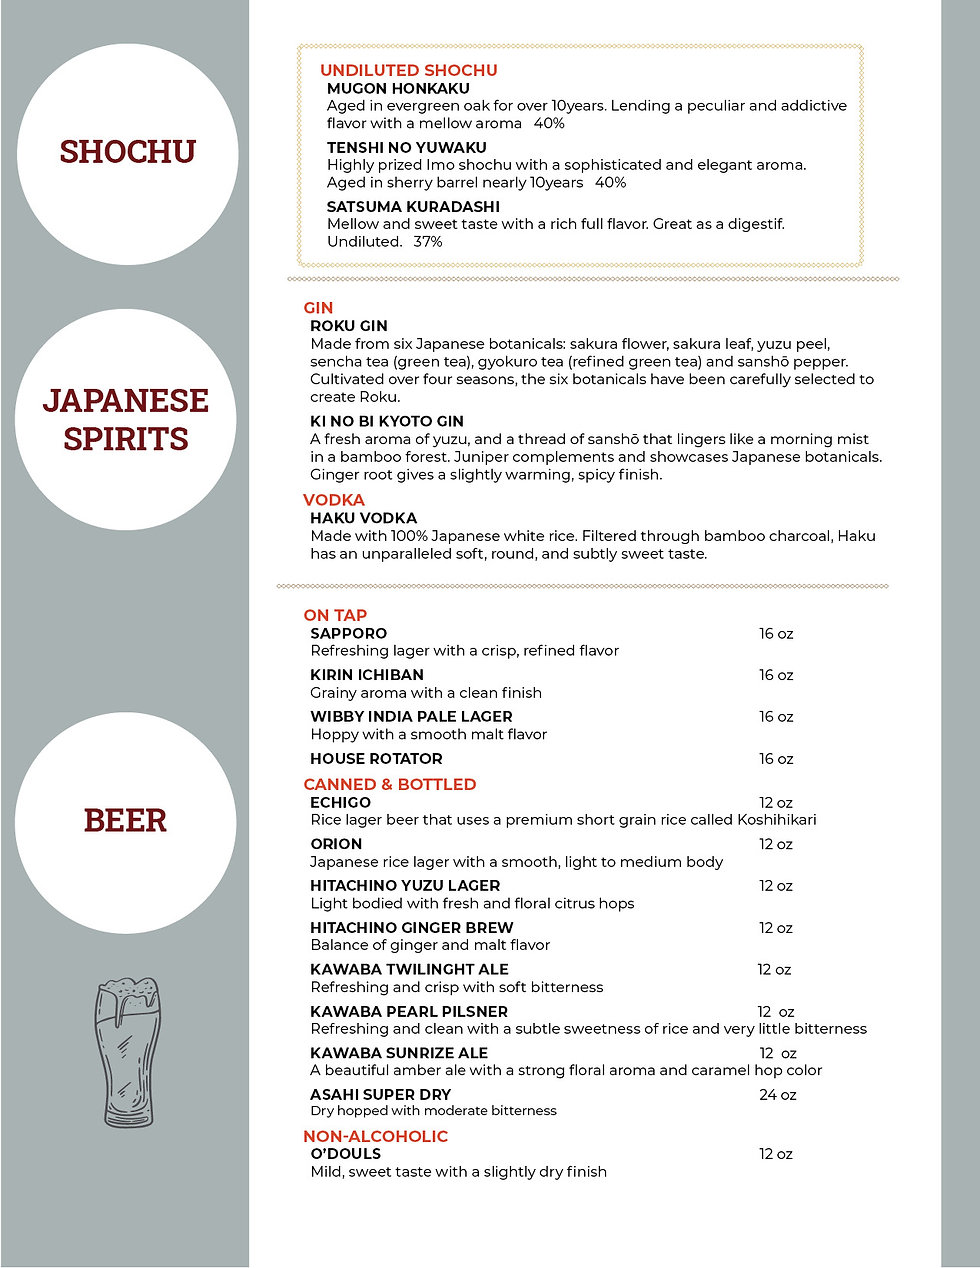 drink menu_053120_withoutprice4.jpg